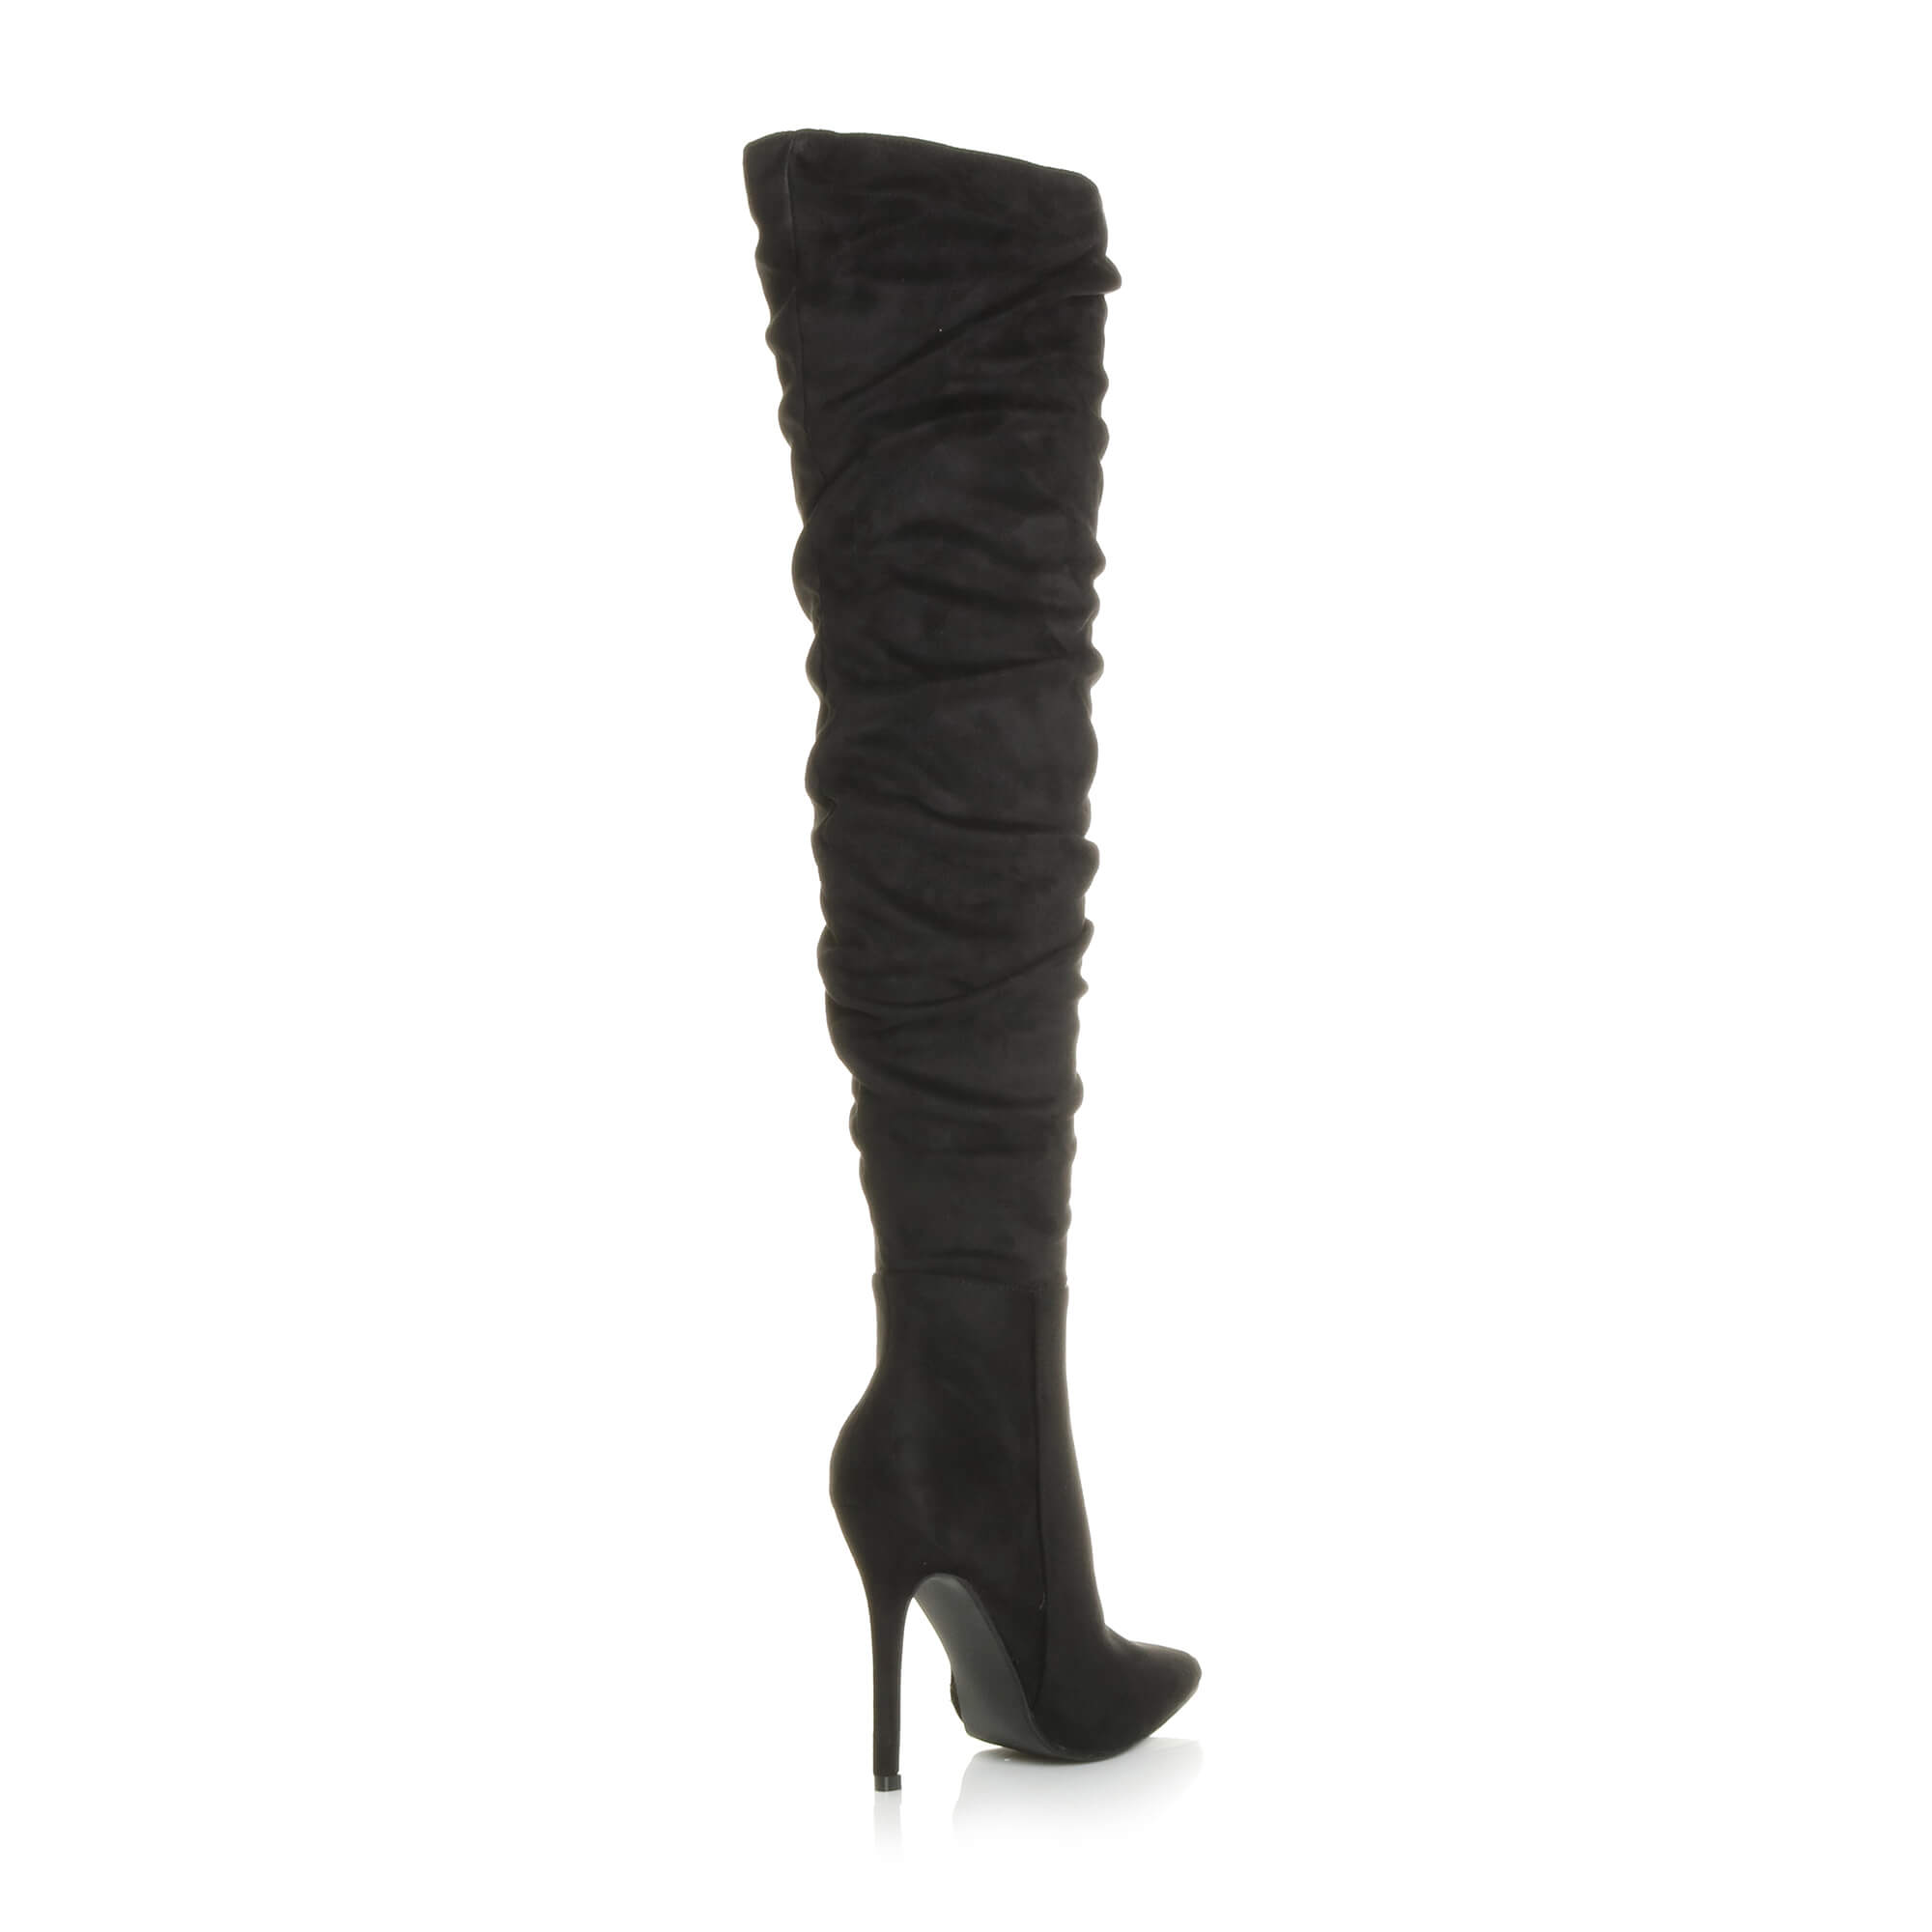 WOMENS-LADIES-SLOUCH-RUCHED-OVER-THE-KNEE-POINTED-THIGH-HIGH-HEELED-BOOTS-SIZE thumbnail 5